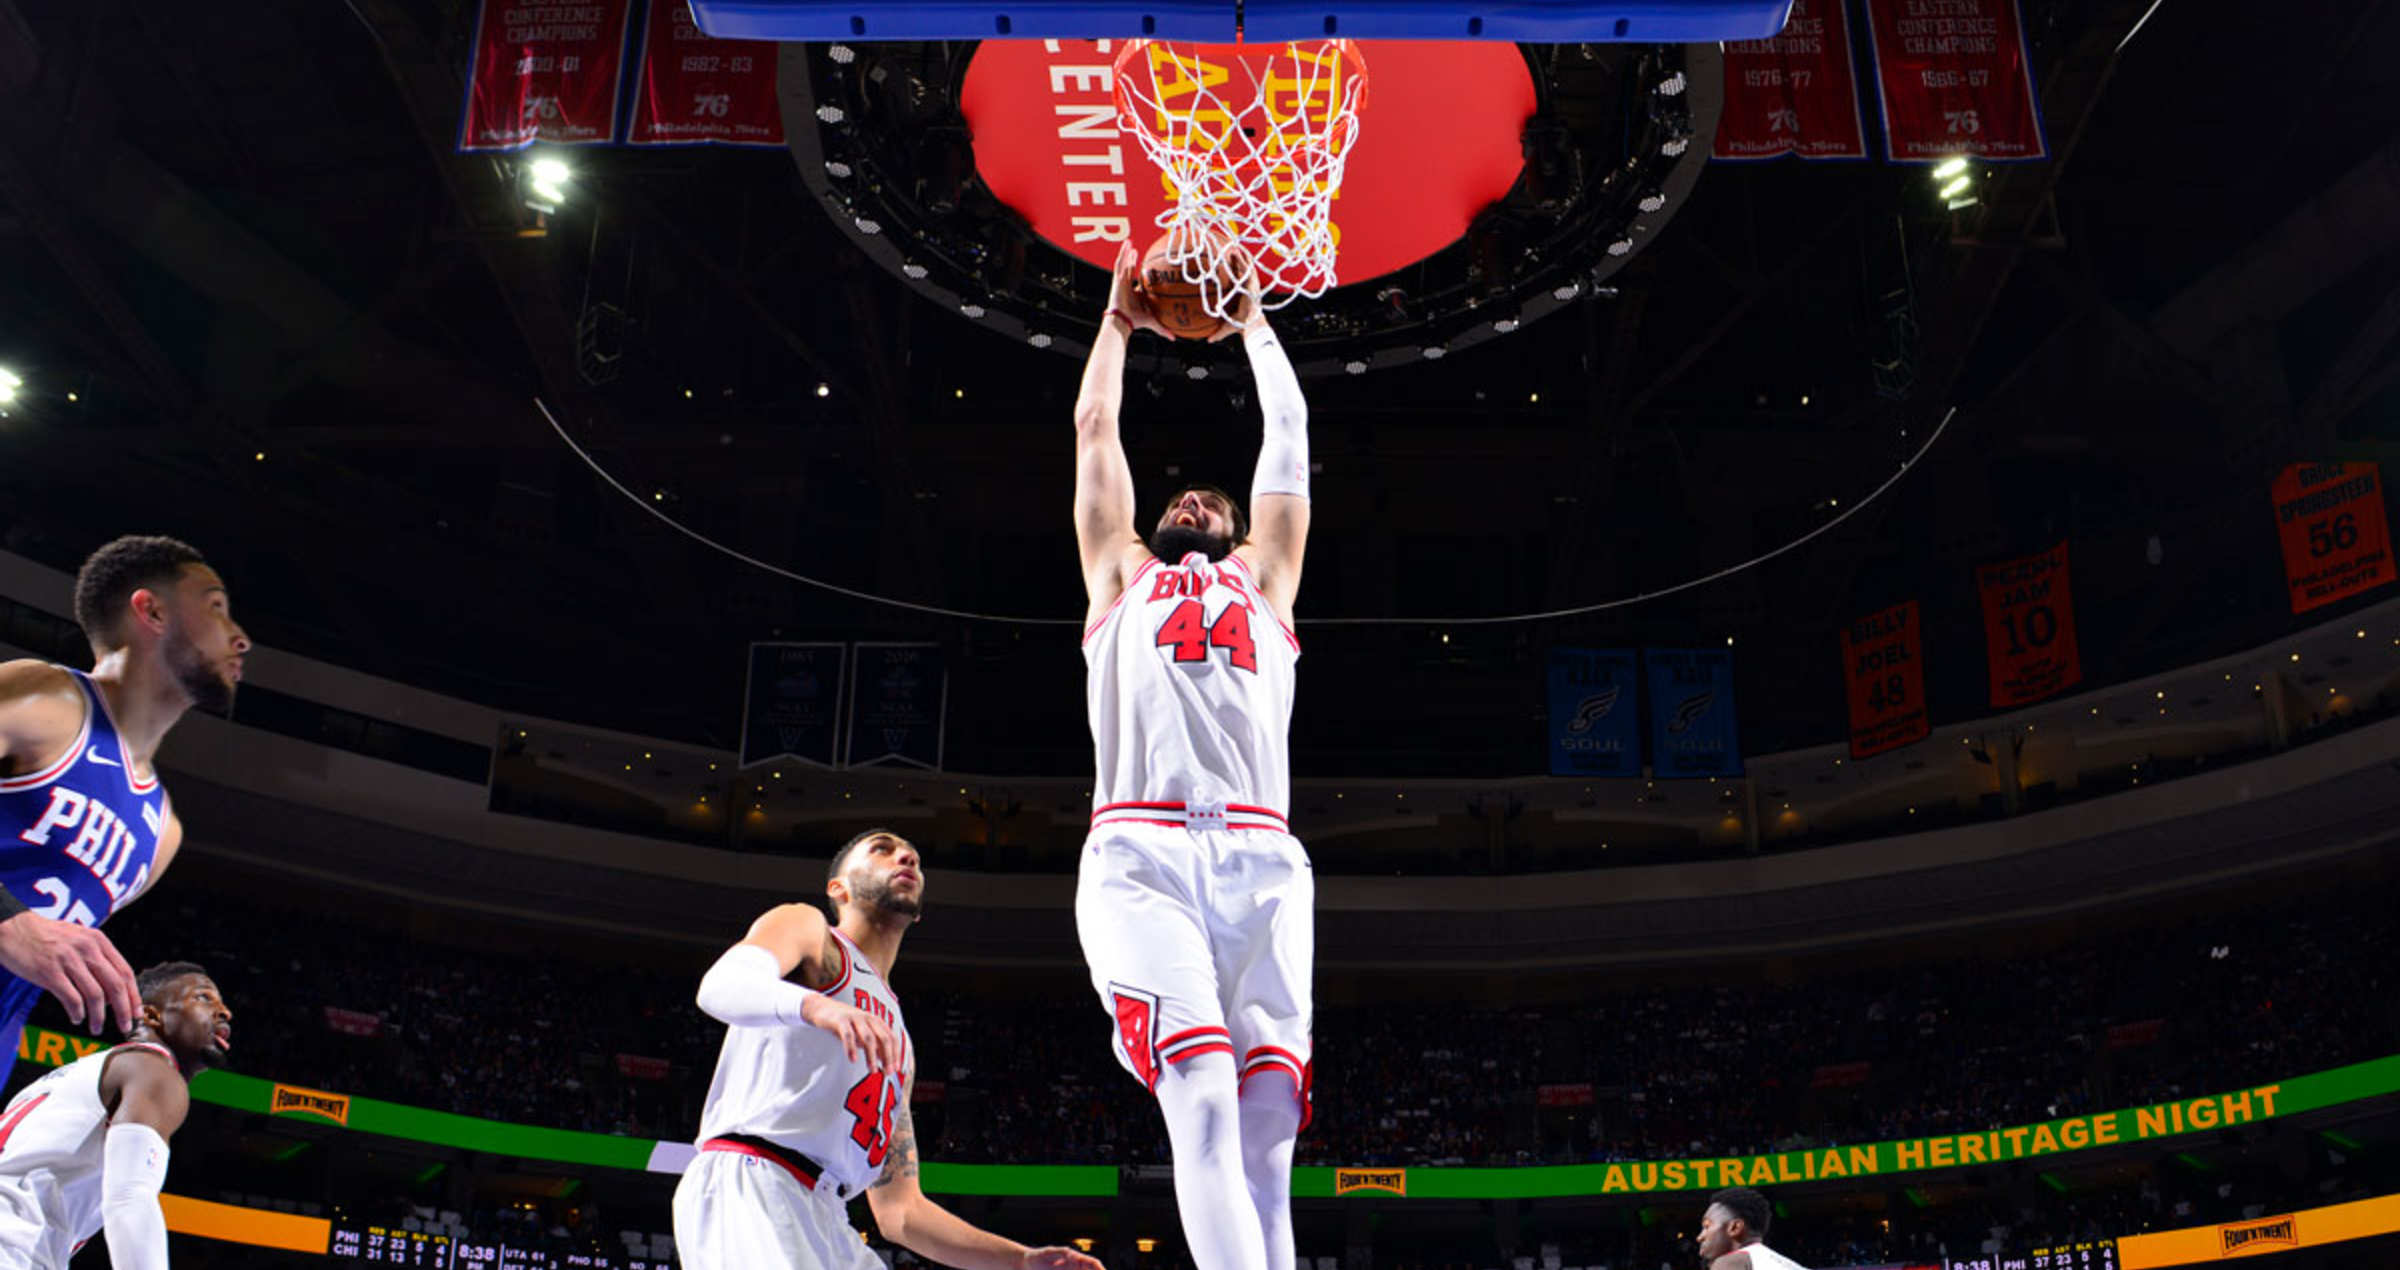 Nikola Mirotic of the Chicago Bulls dunks the ball against the 76ers